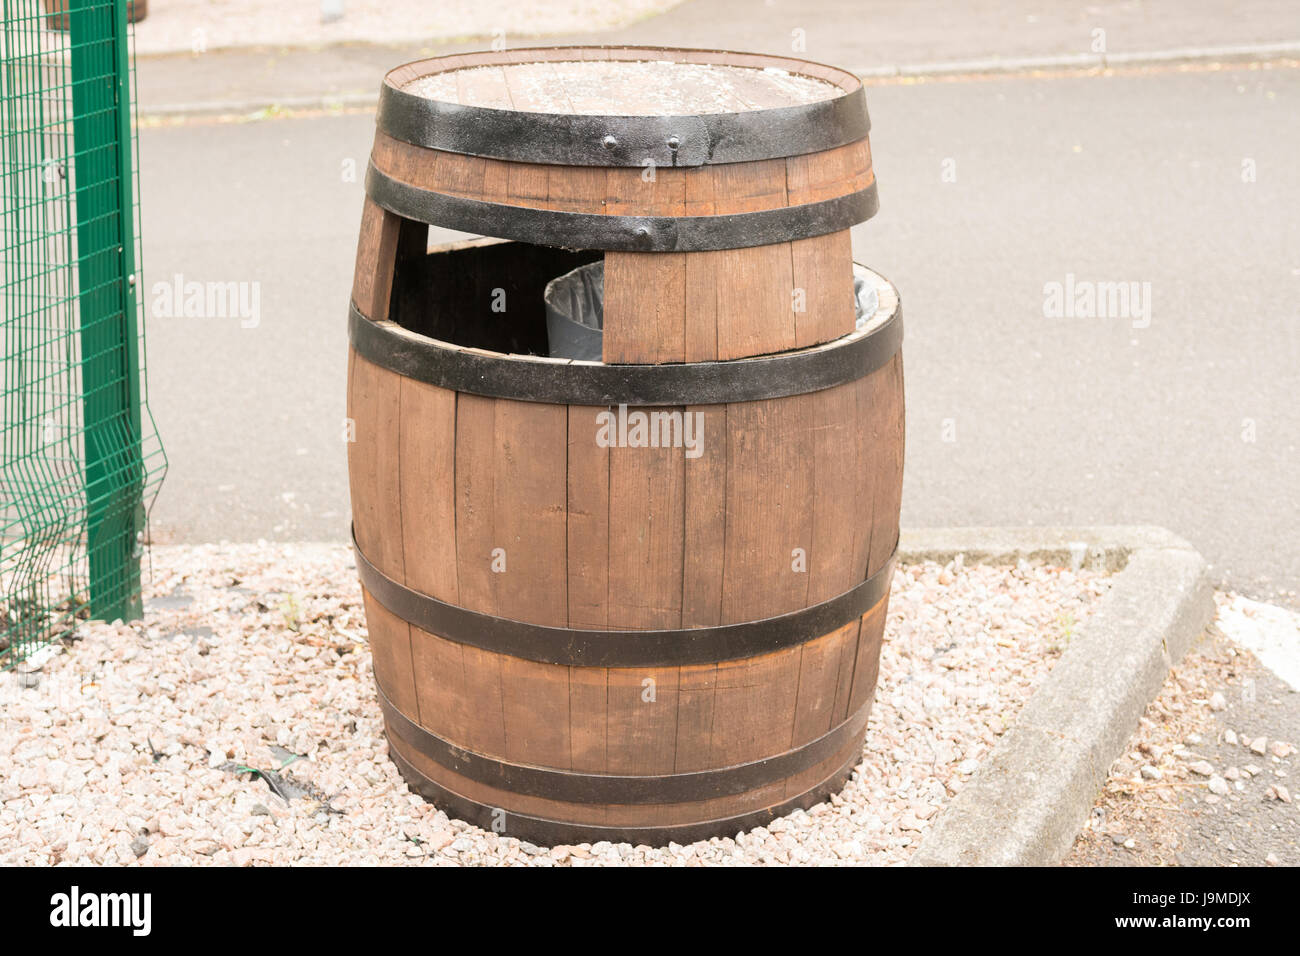 upcycling - upcycled recycled whisky whiskey barrel being used as a rubbish bin - Stock Image